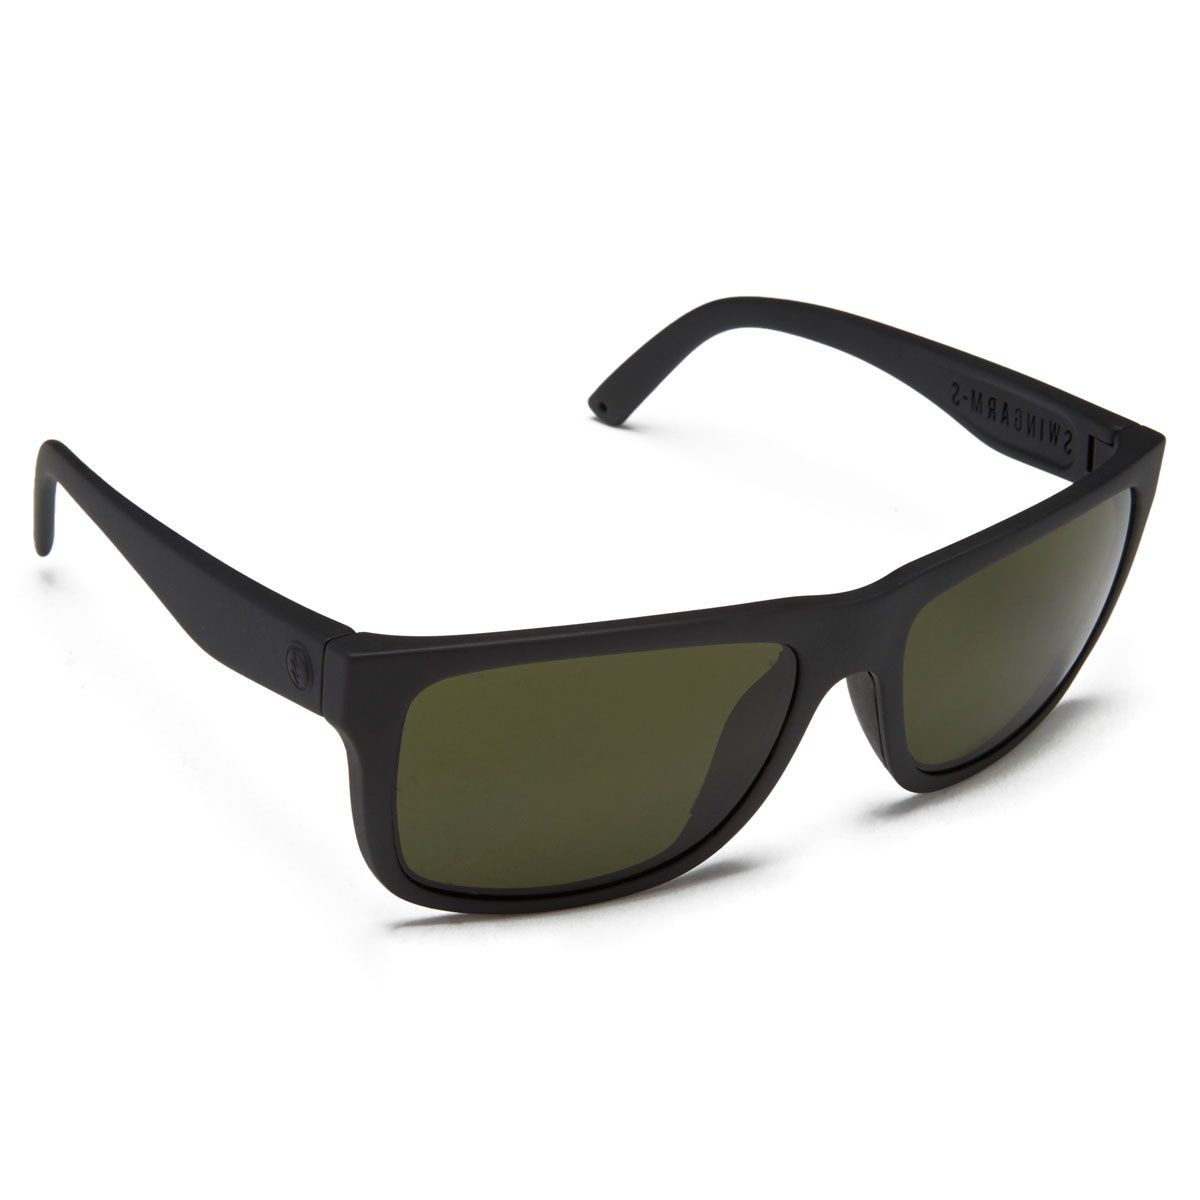 Electric Swingarm S Sunglasses - Matte Black OHM Grey 103d254fe0